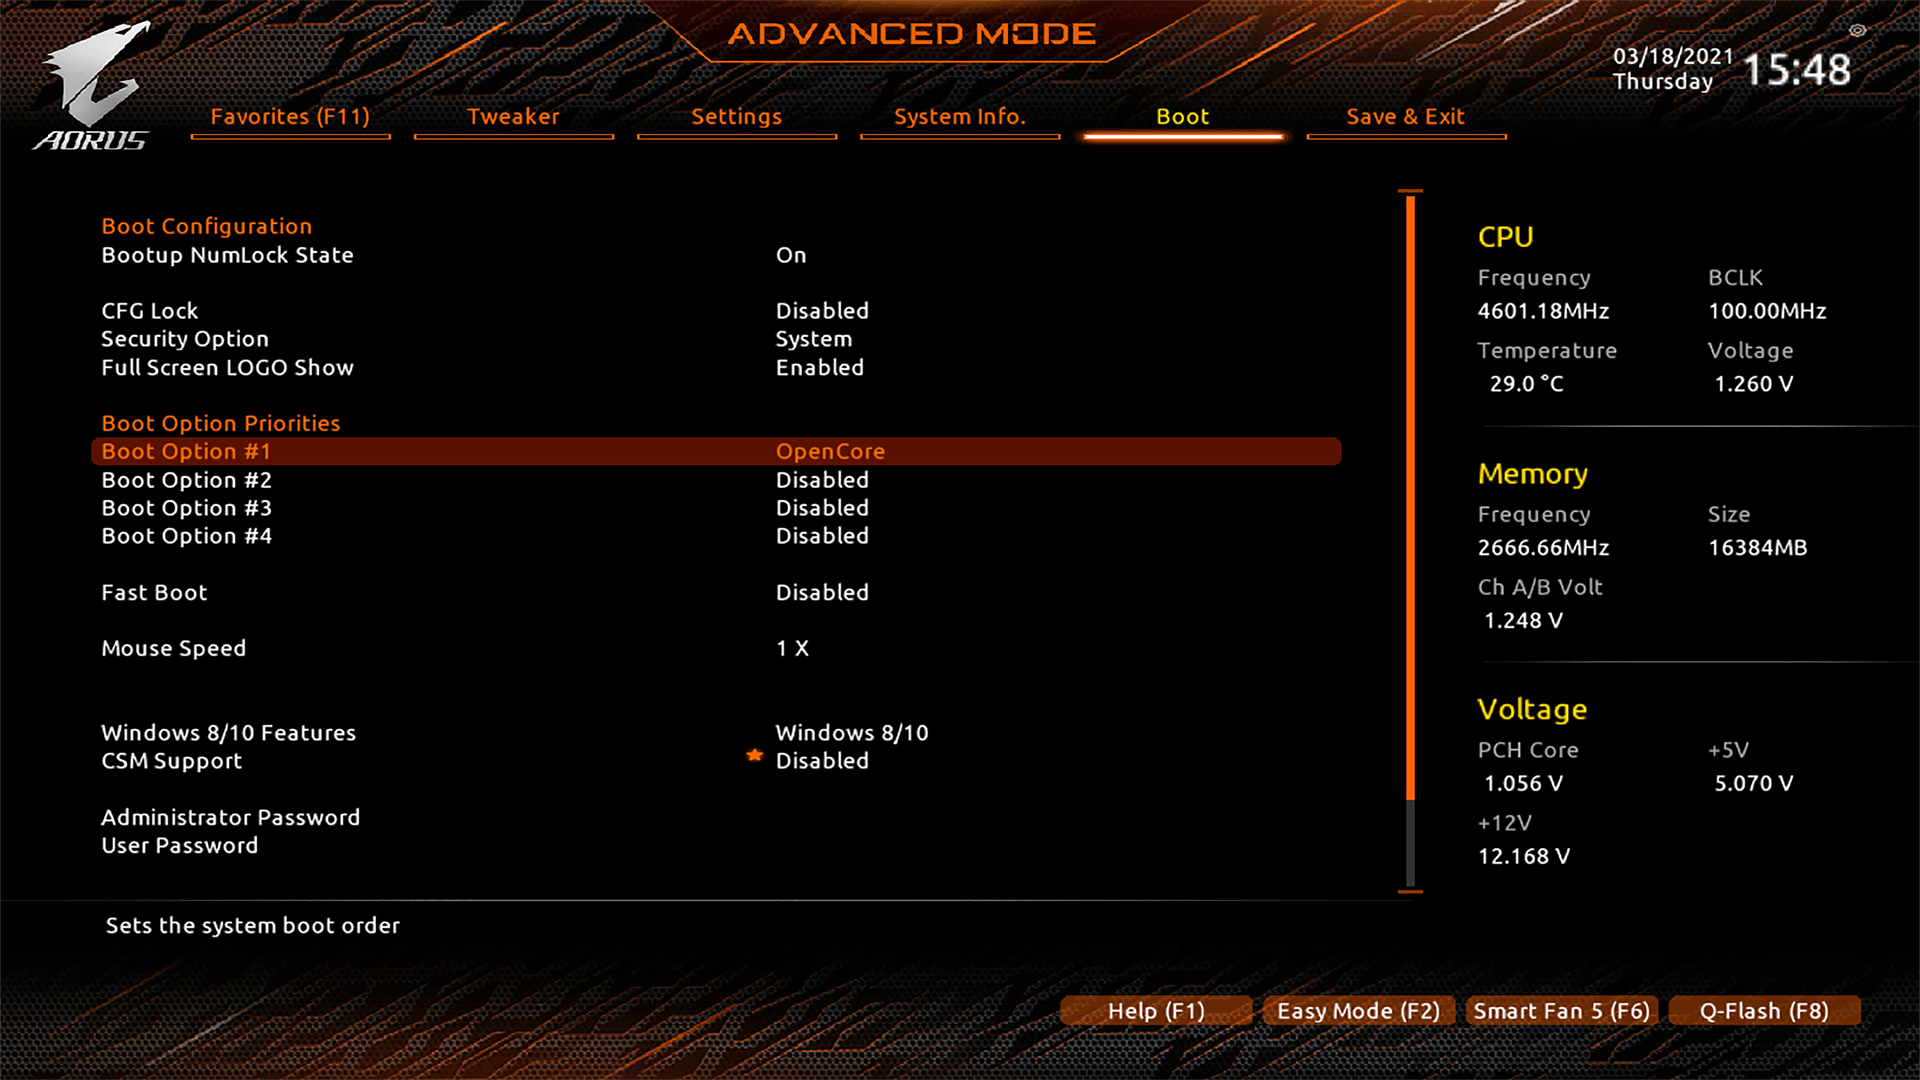 OpenCore Selected as Default BIOS Boot Option